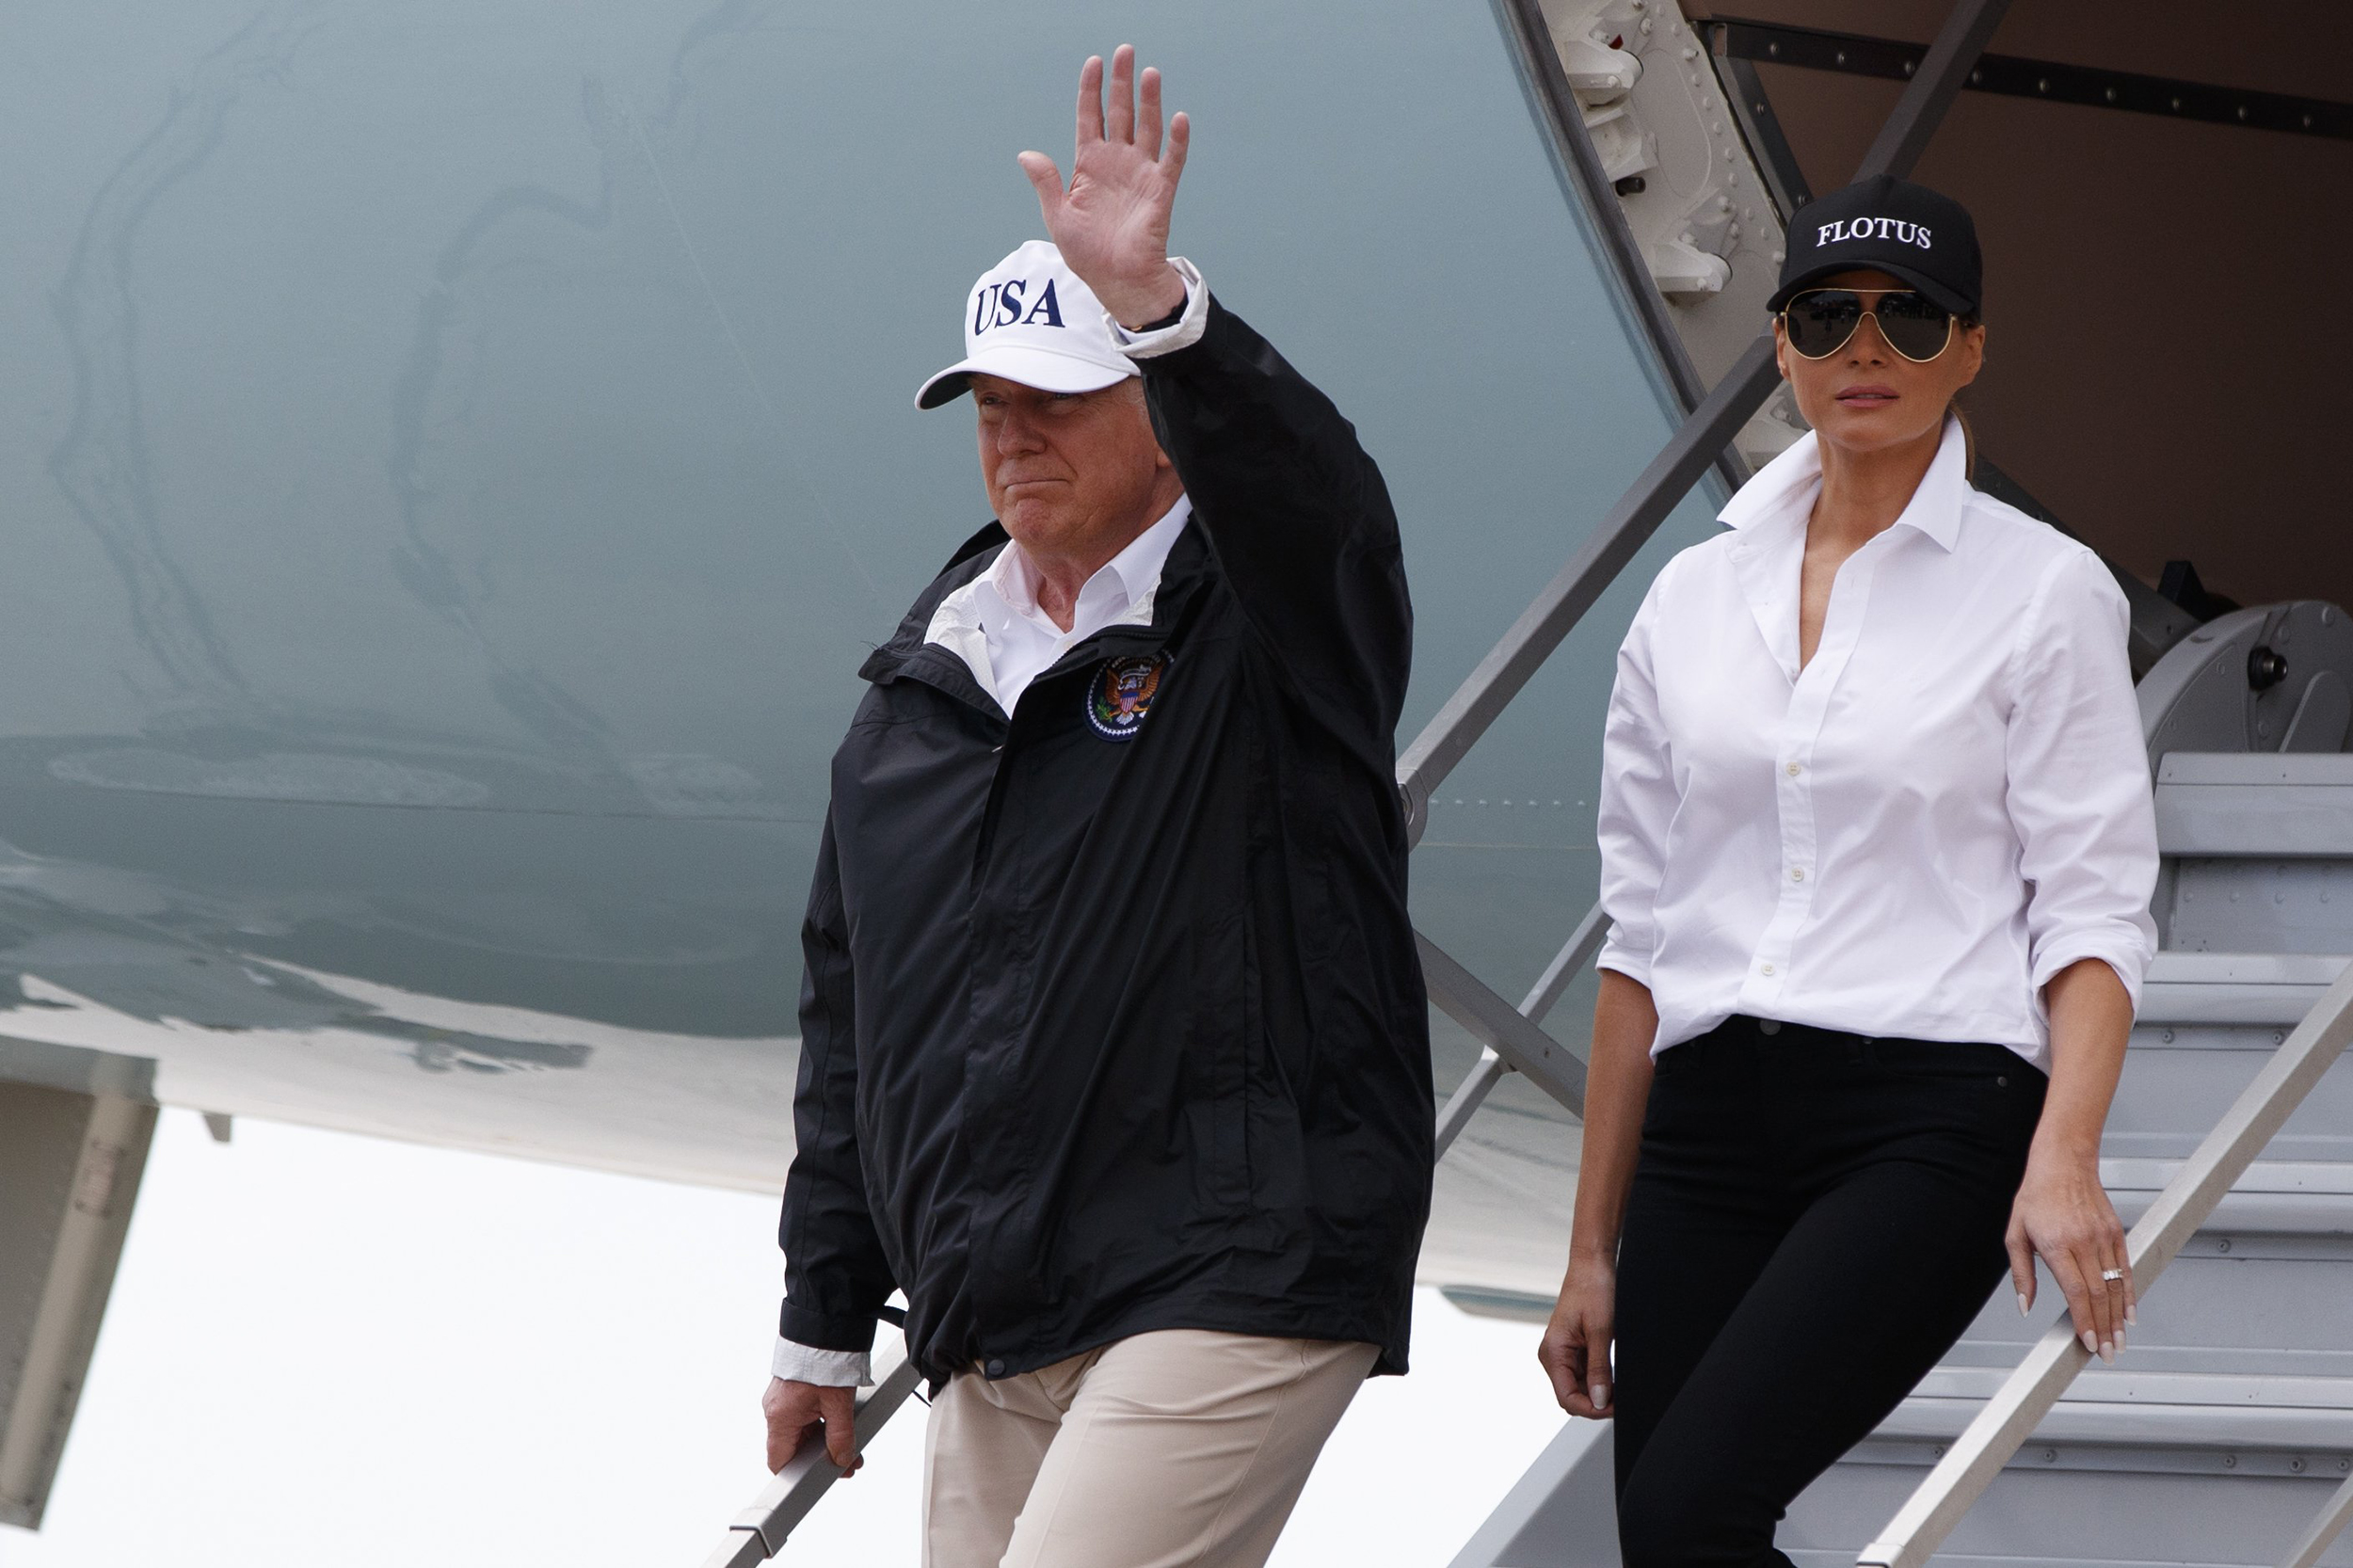 Image: President Donald Trump, accompanied by first lady Melania Trump, waves as they arrive on Air Force One at Corpus Christi International Airport